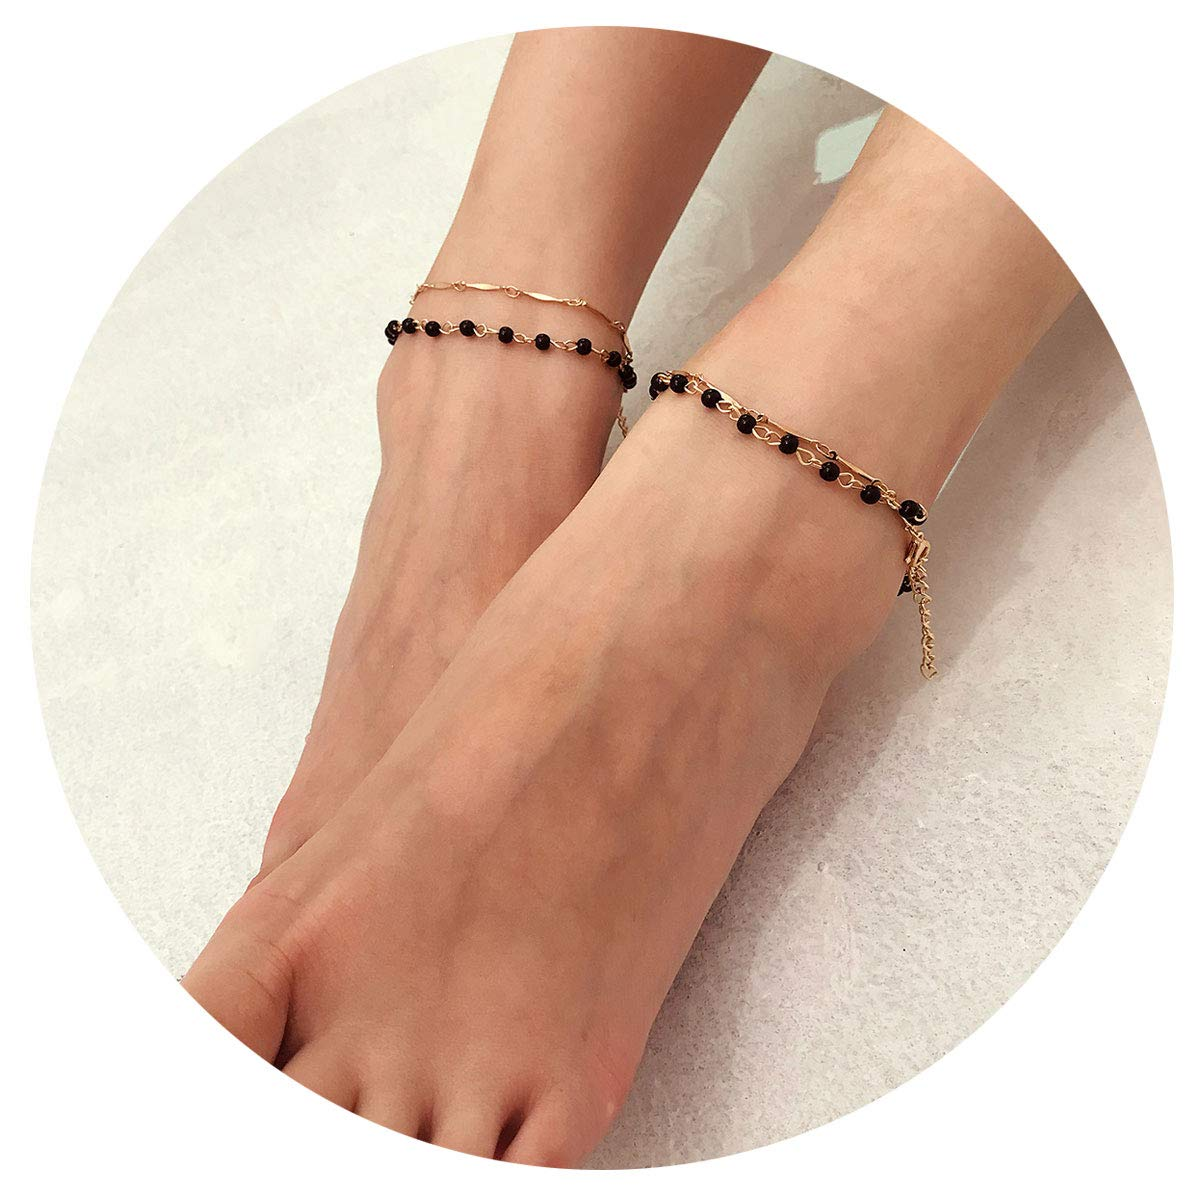 NASAMA Adjustable Beach Anklets Bracelets Jewelry Layered Round Beads Sequins Turquoises Foot Chain for Women and Girls Ltd